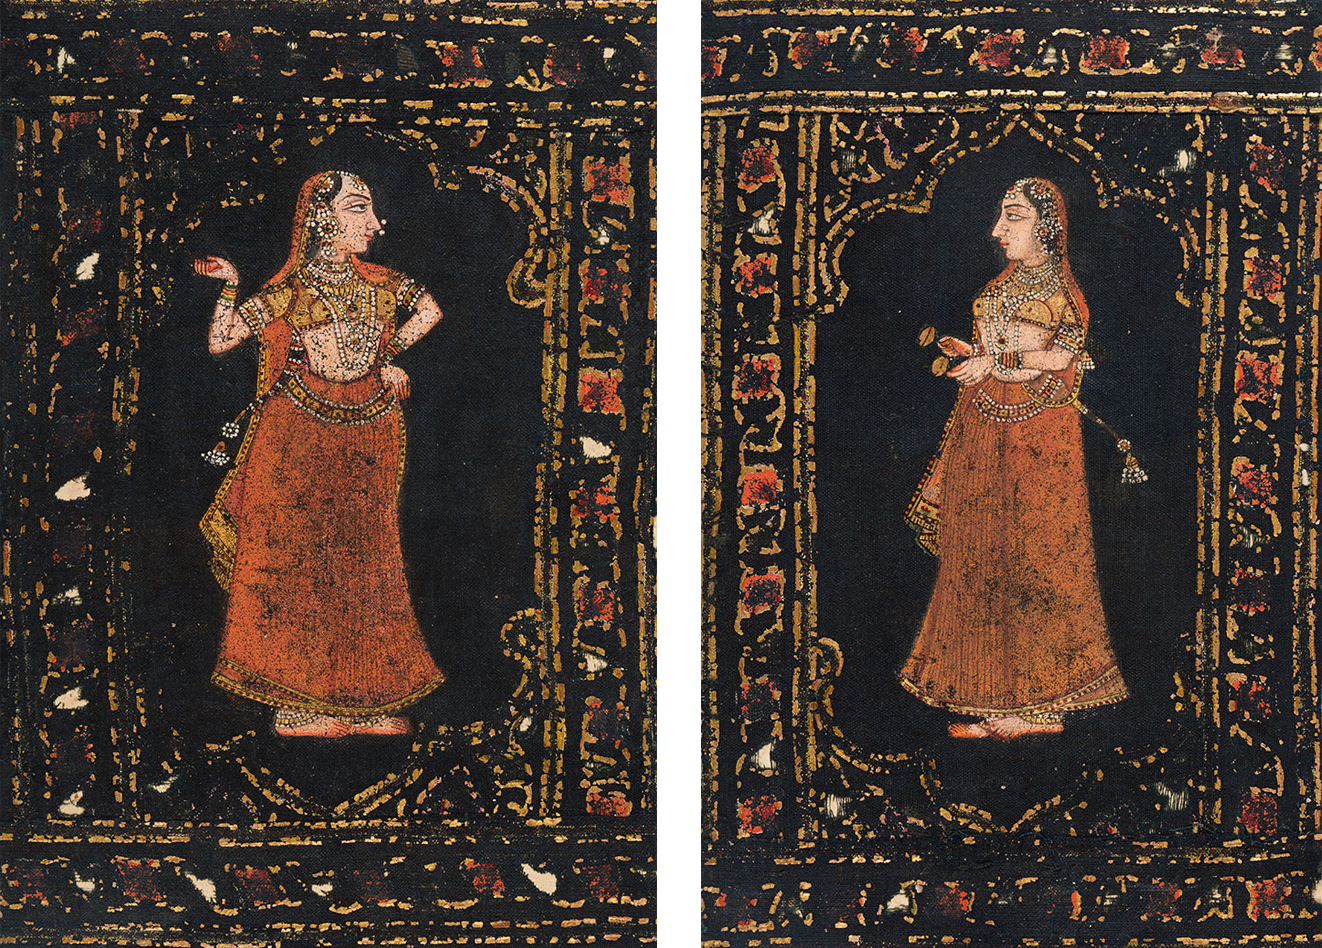 Fragments of a pichwai depicting gopis , mid to late 18th century  Mineral pigments & gold, painted & block printed on cotton fabric; H. 19.8 cm, W. 14 cm From the Textiles, Craft & Design collections at MAP; Gifted by Francesca Galloway